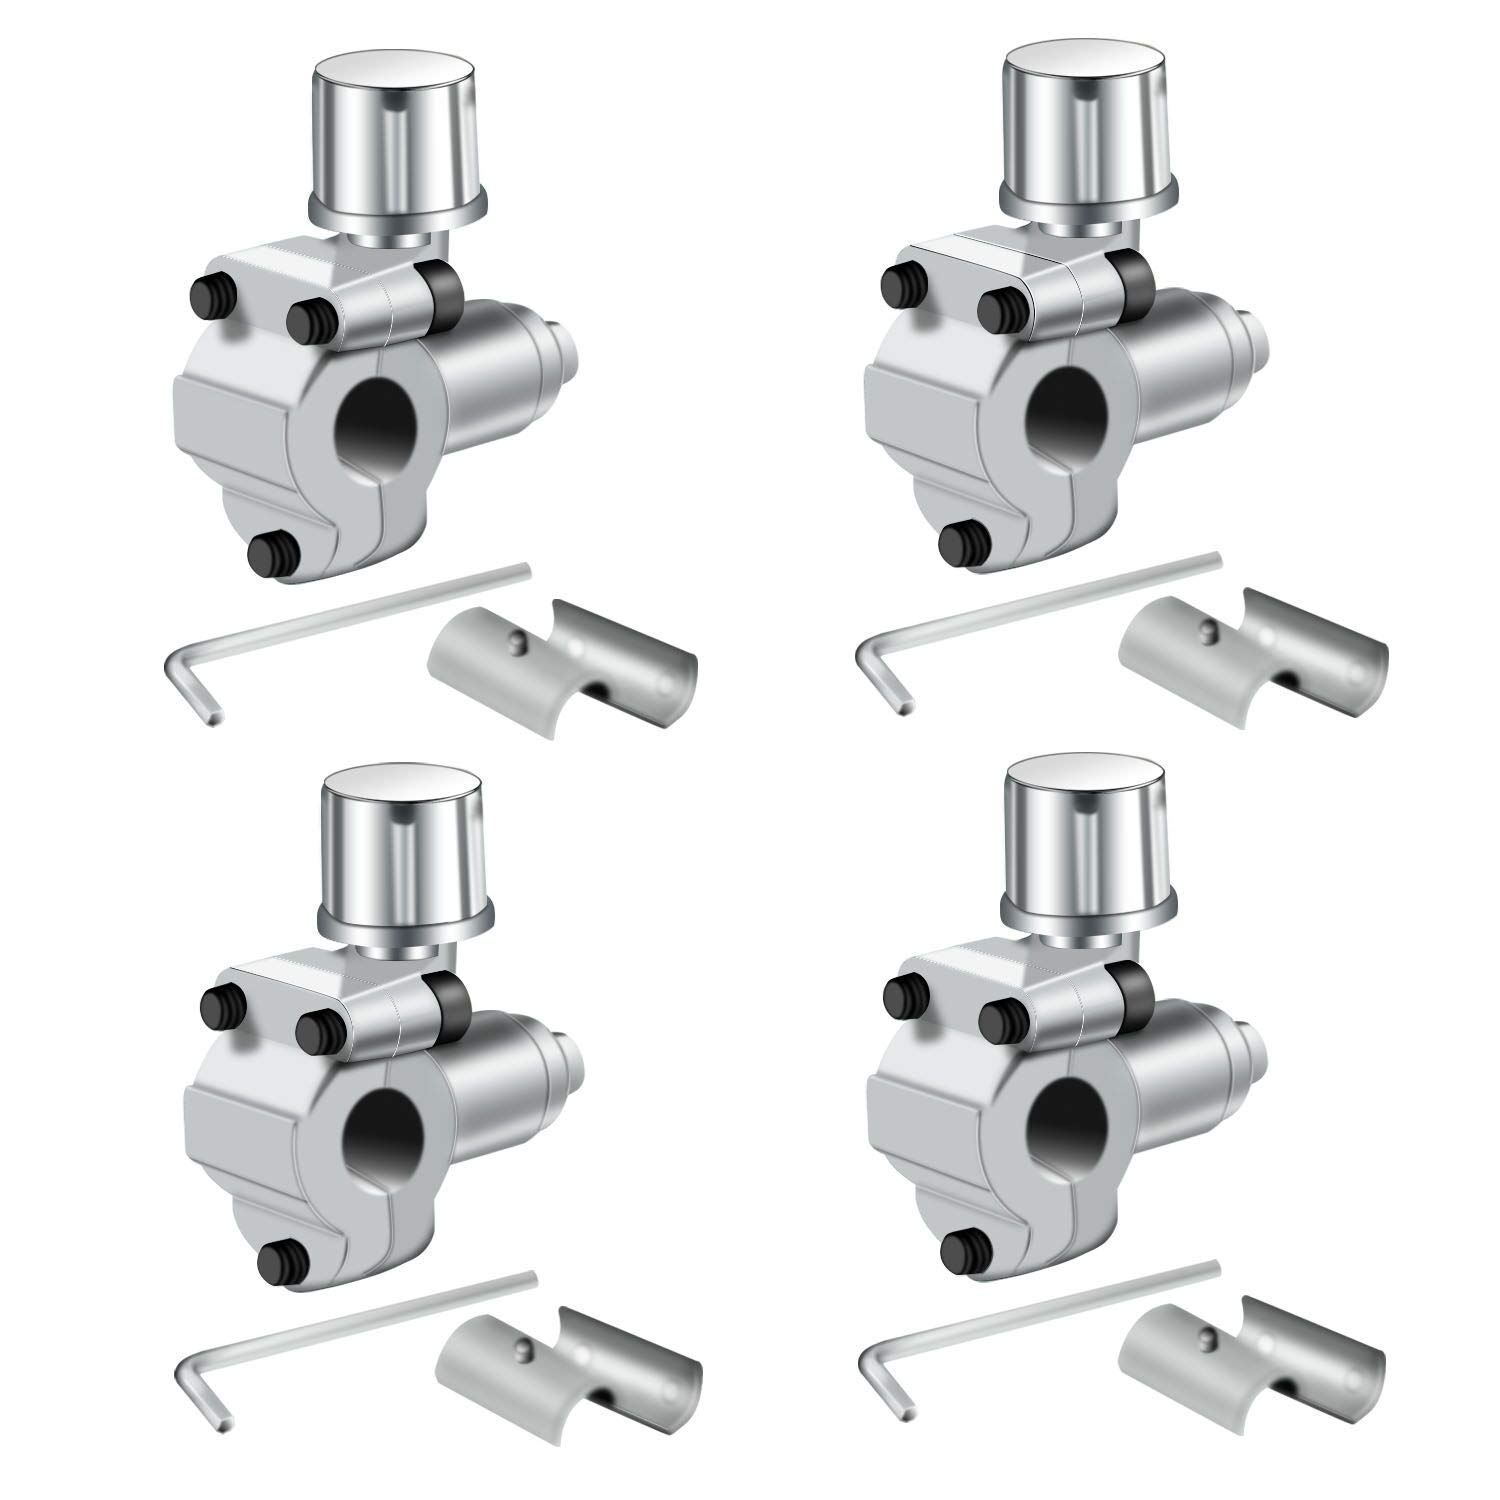 "Trounistro 4 Pack BPV-31 Bullet Piercing Valve Line Tap Valve Kits Adjustable Valve for Air Conditioners HVAC 1/4"", 5/16"", 3/8"" Tubing"